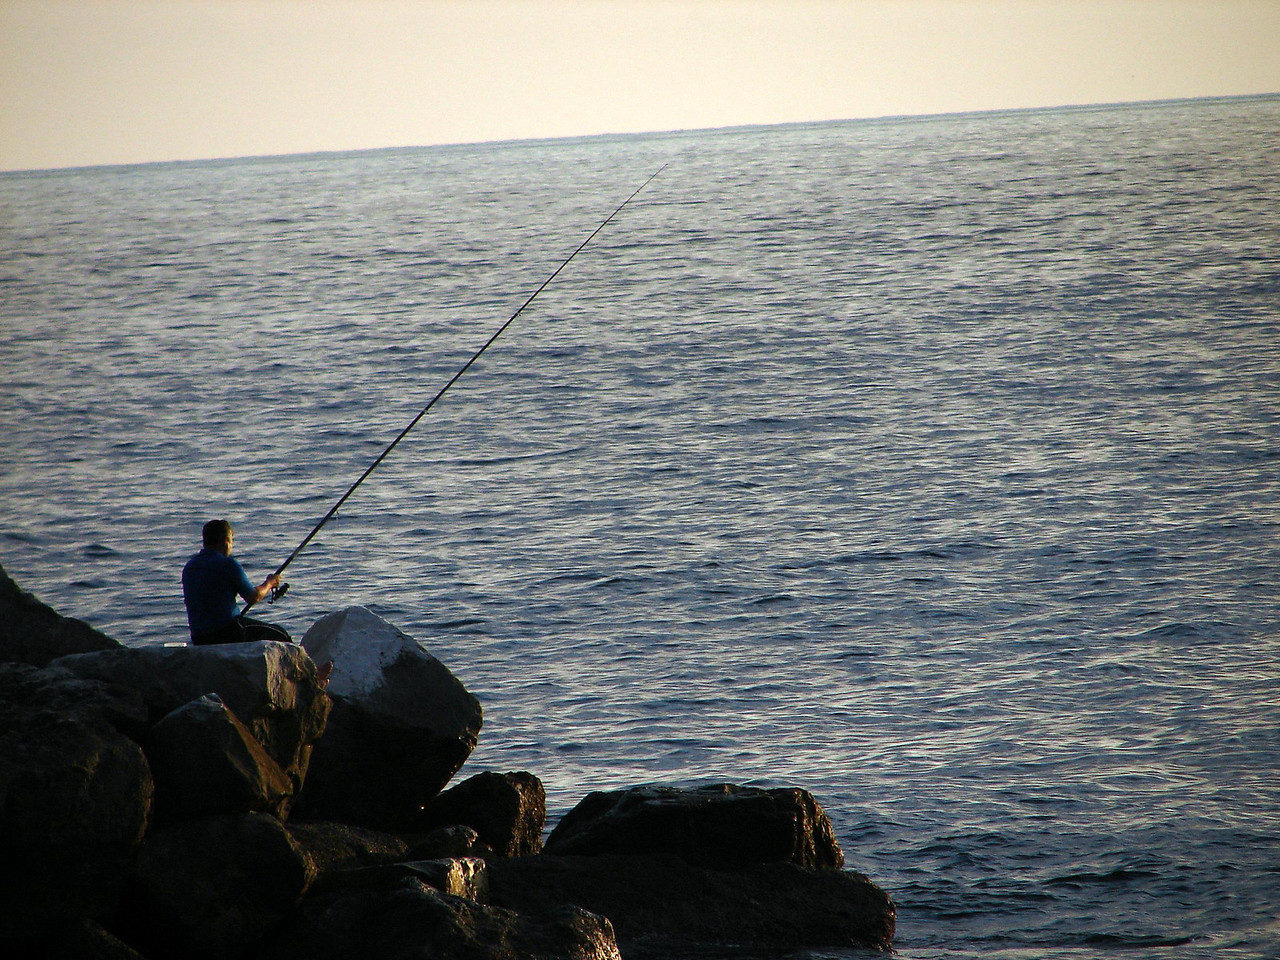 Fishing in the Medeterainian at sunset.